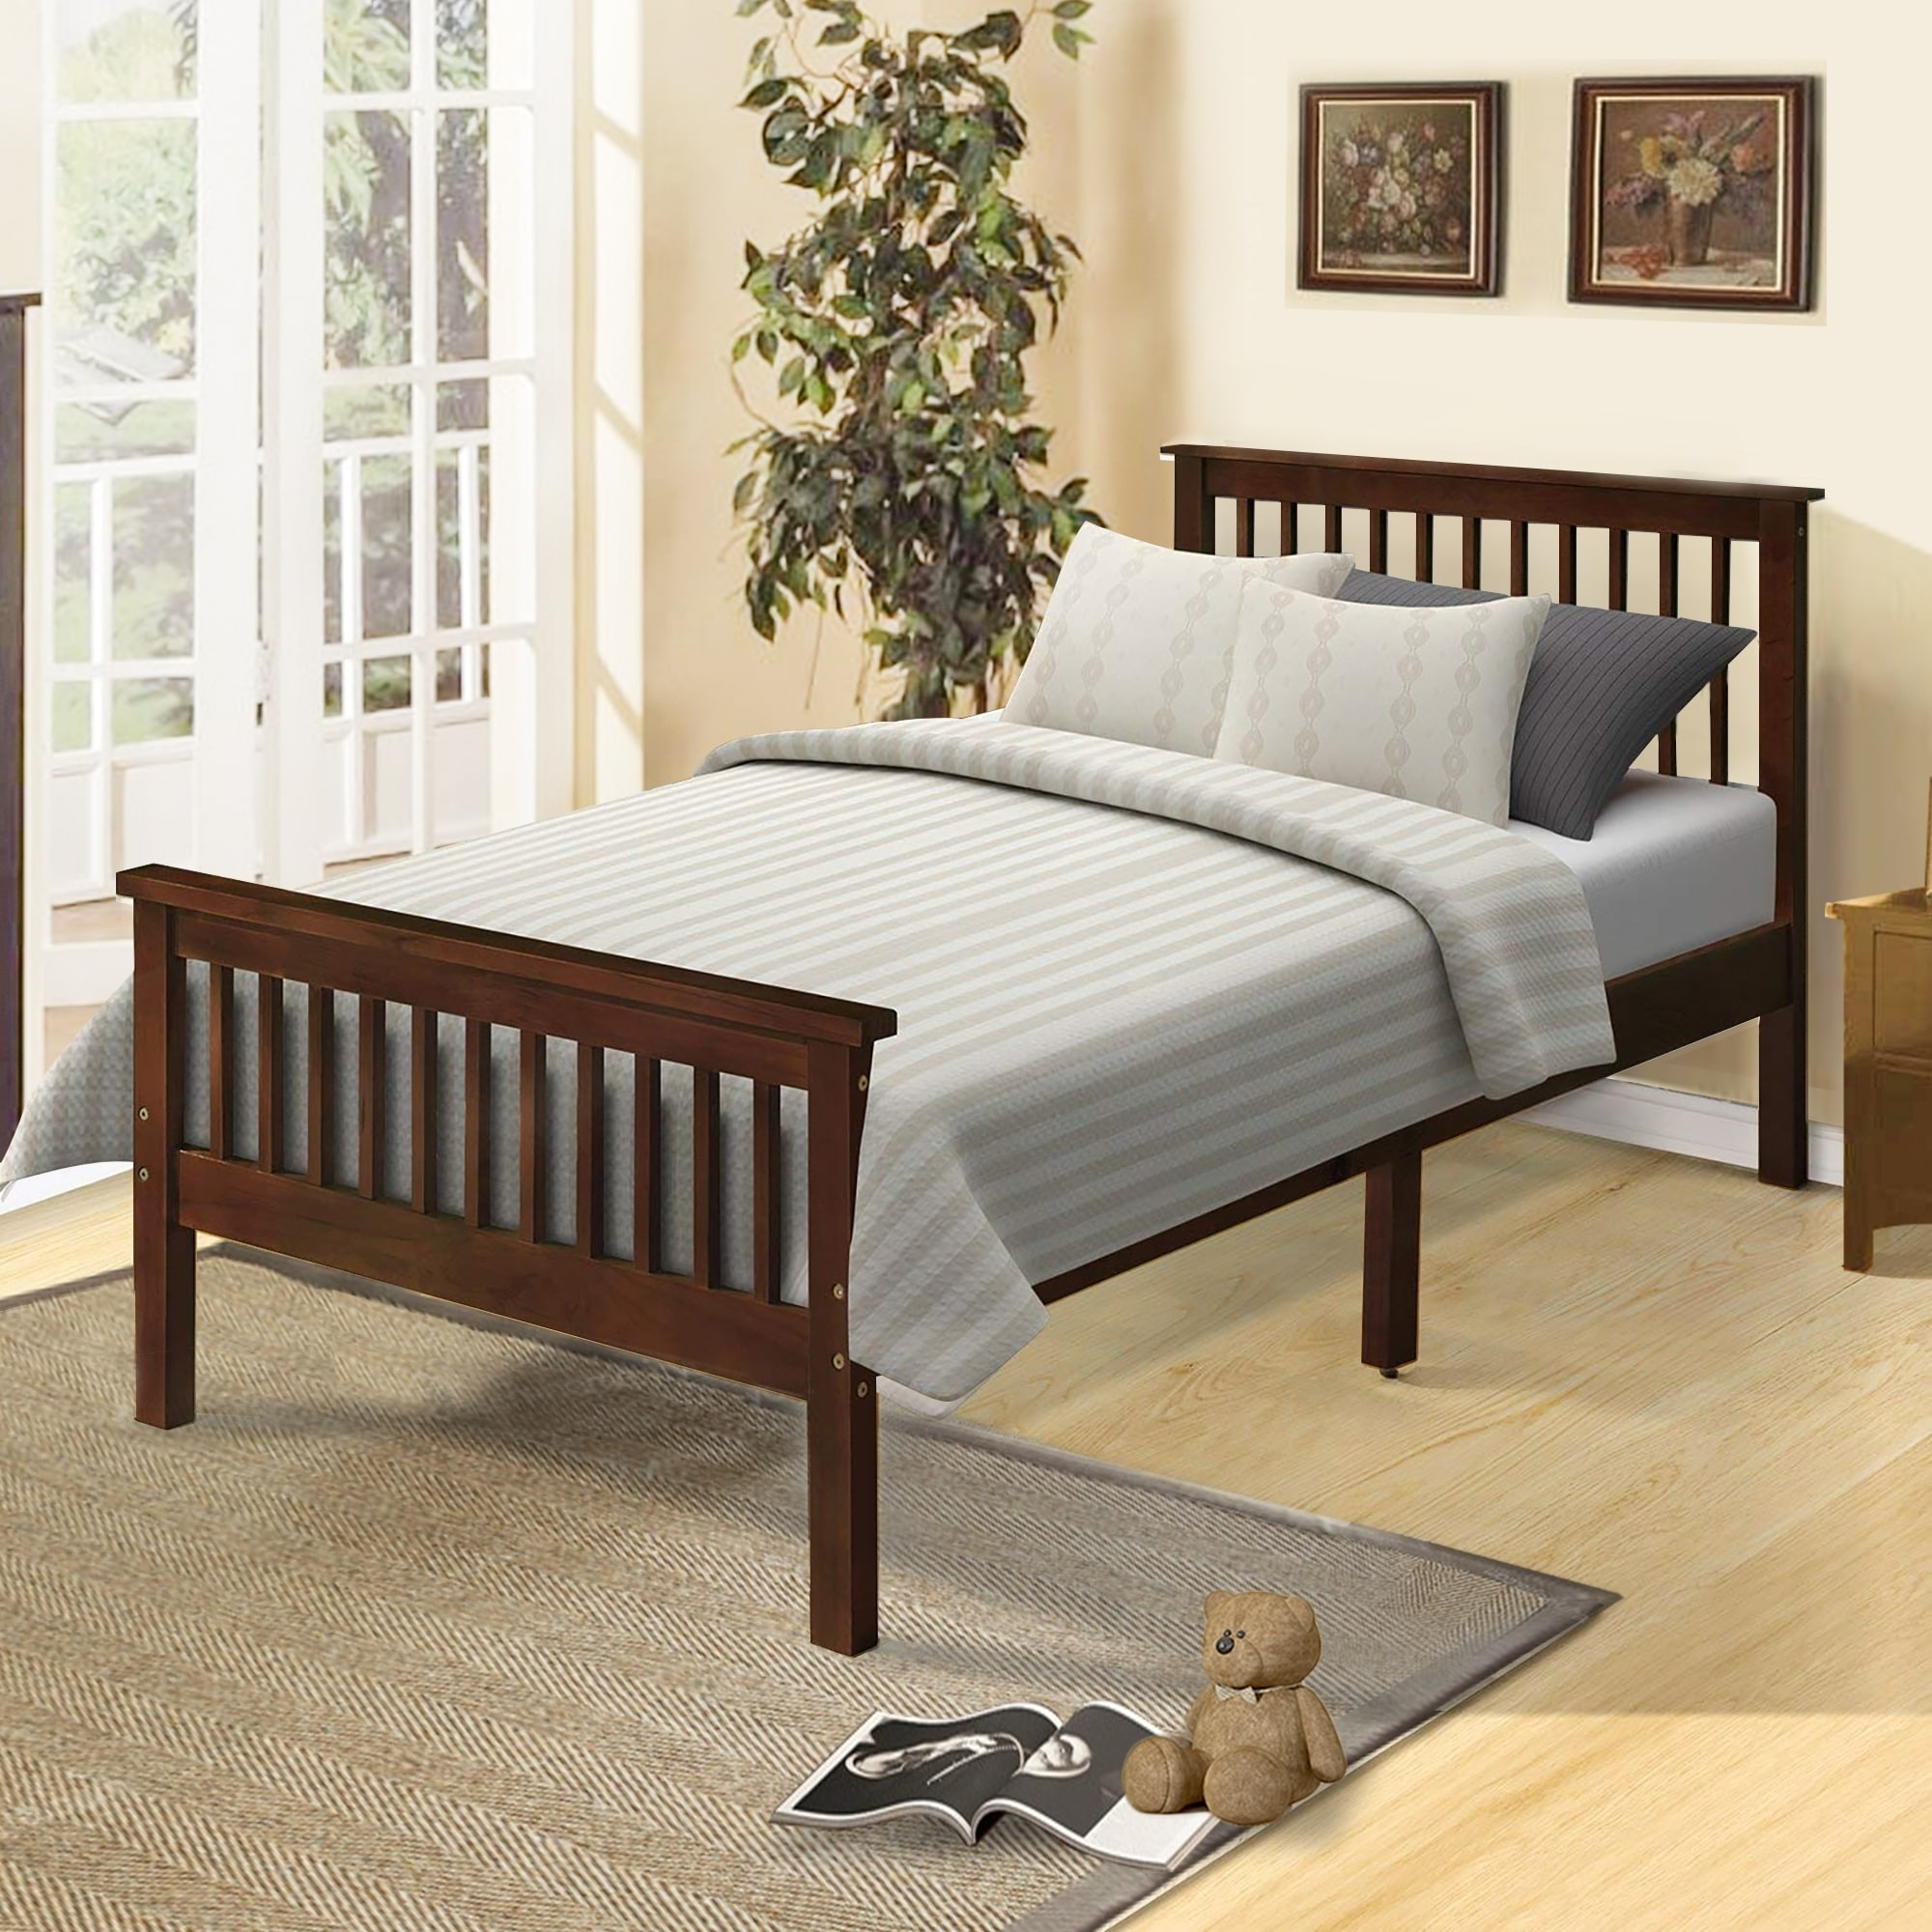 Picture of: Shop Black Friday Deals On Wood Platform Bed Twin Bed With Headboard And Footboard Overstock 30546309